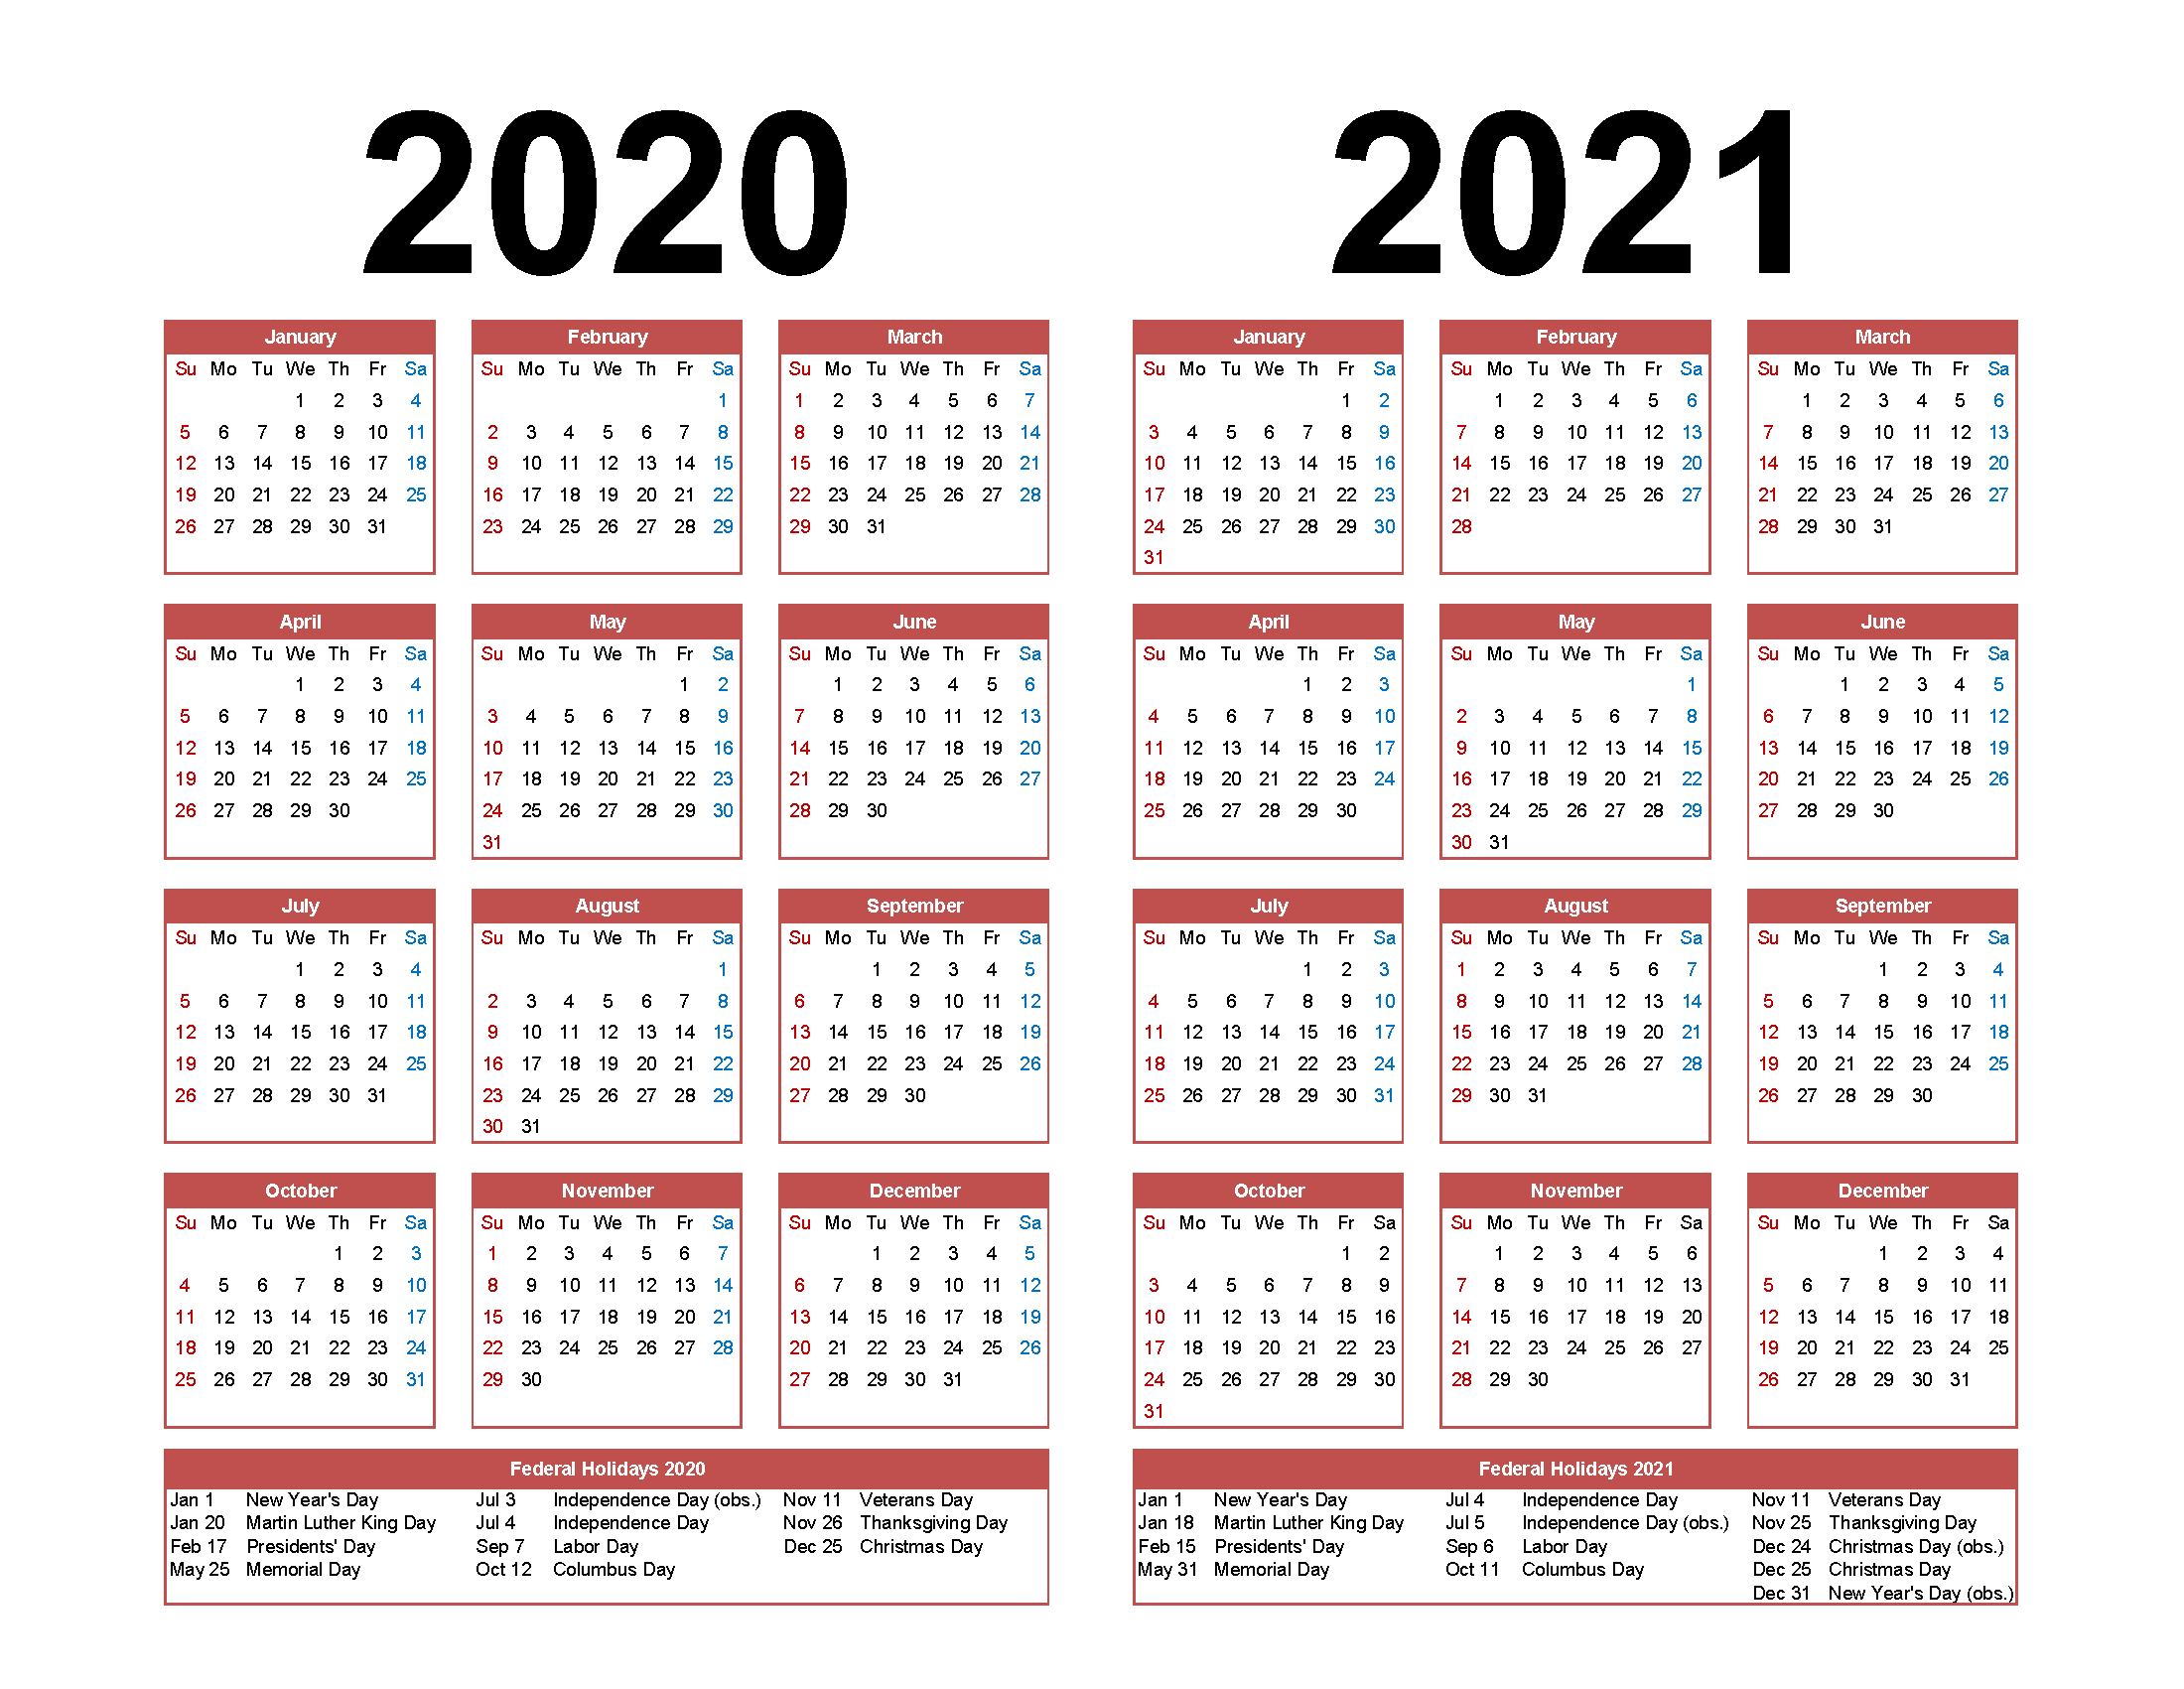 Printable Calendar 2020 2021 Two Year Per Page Free Pdf regarding 2021 Printable Calendar Free